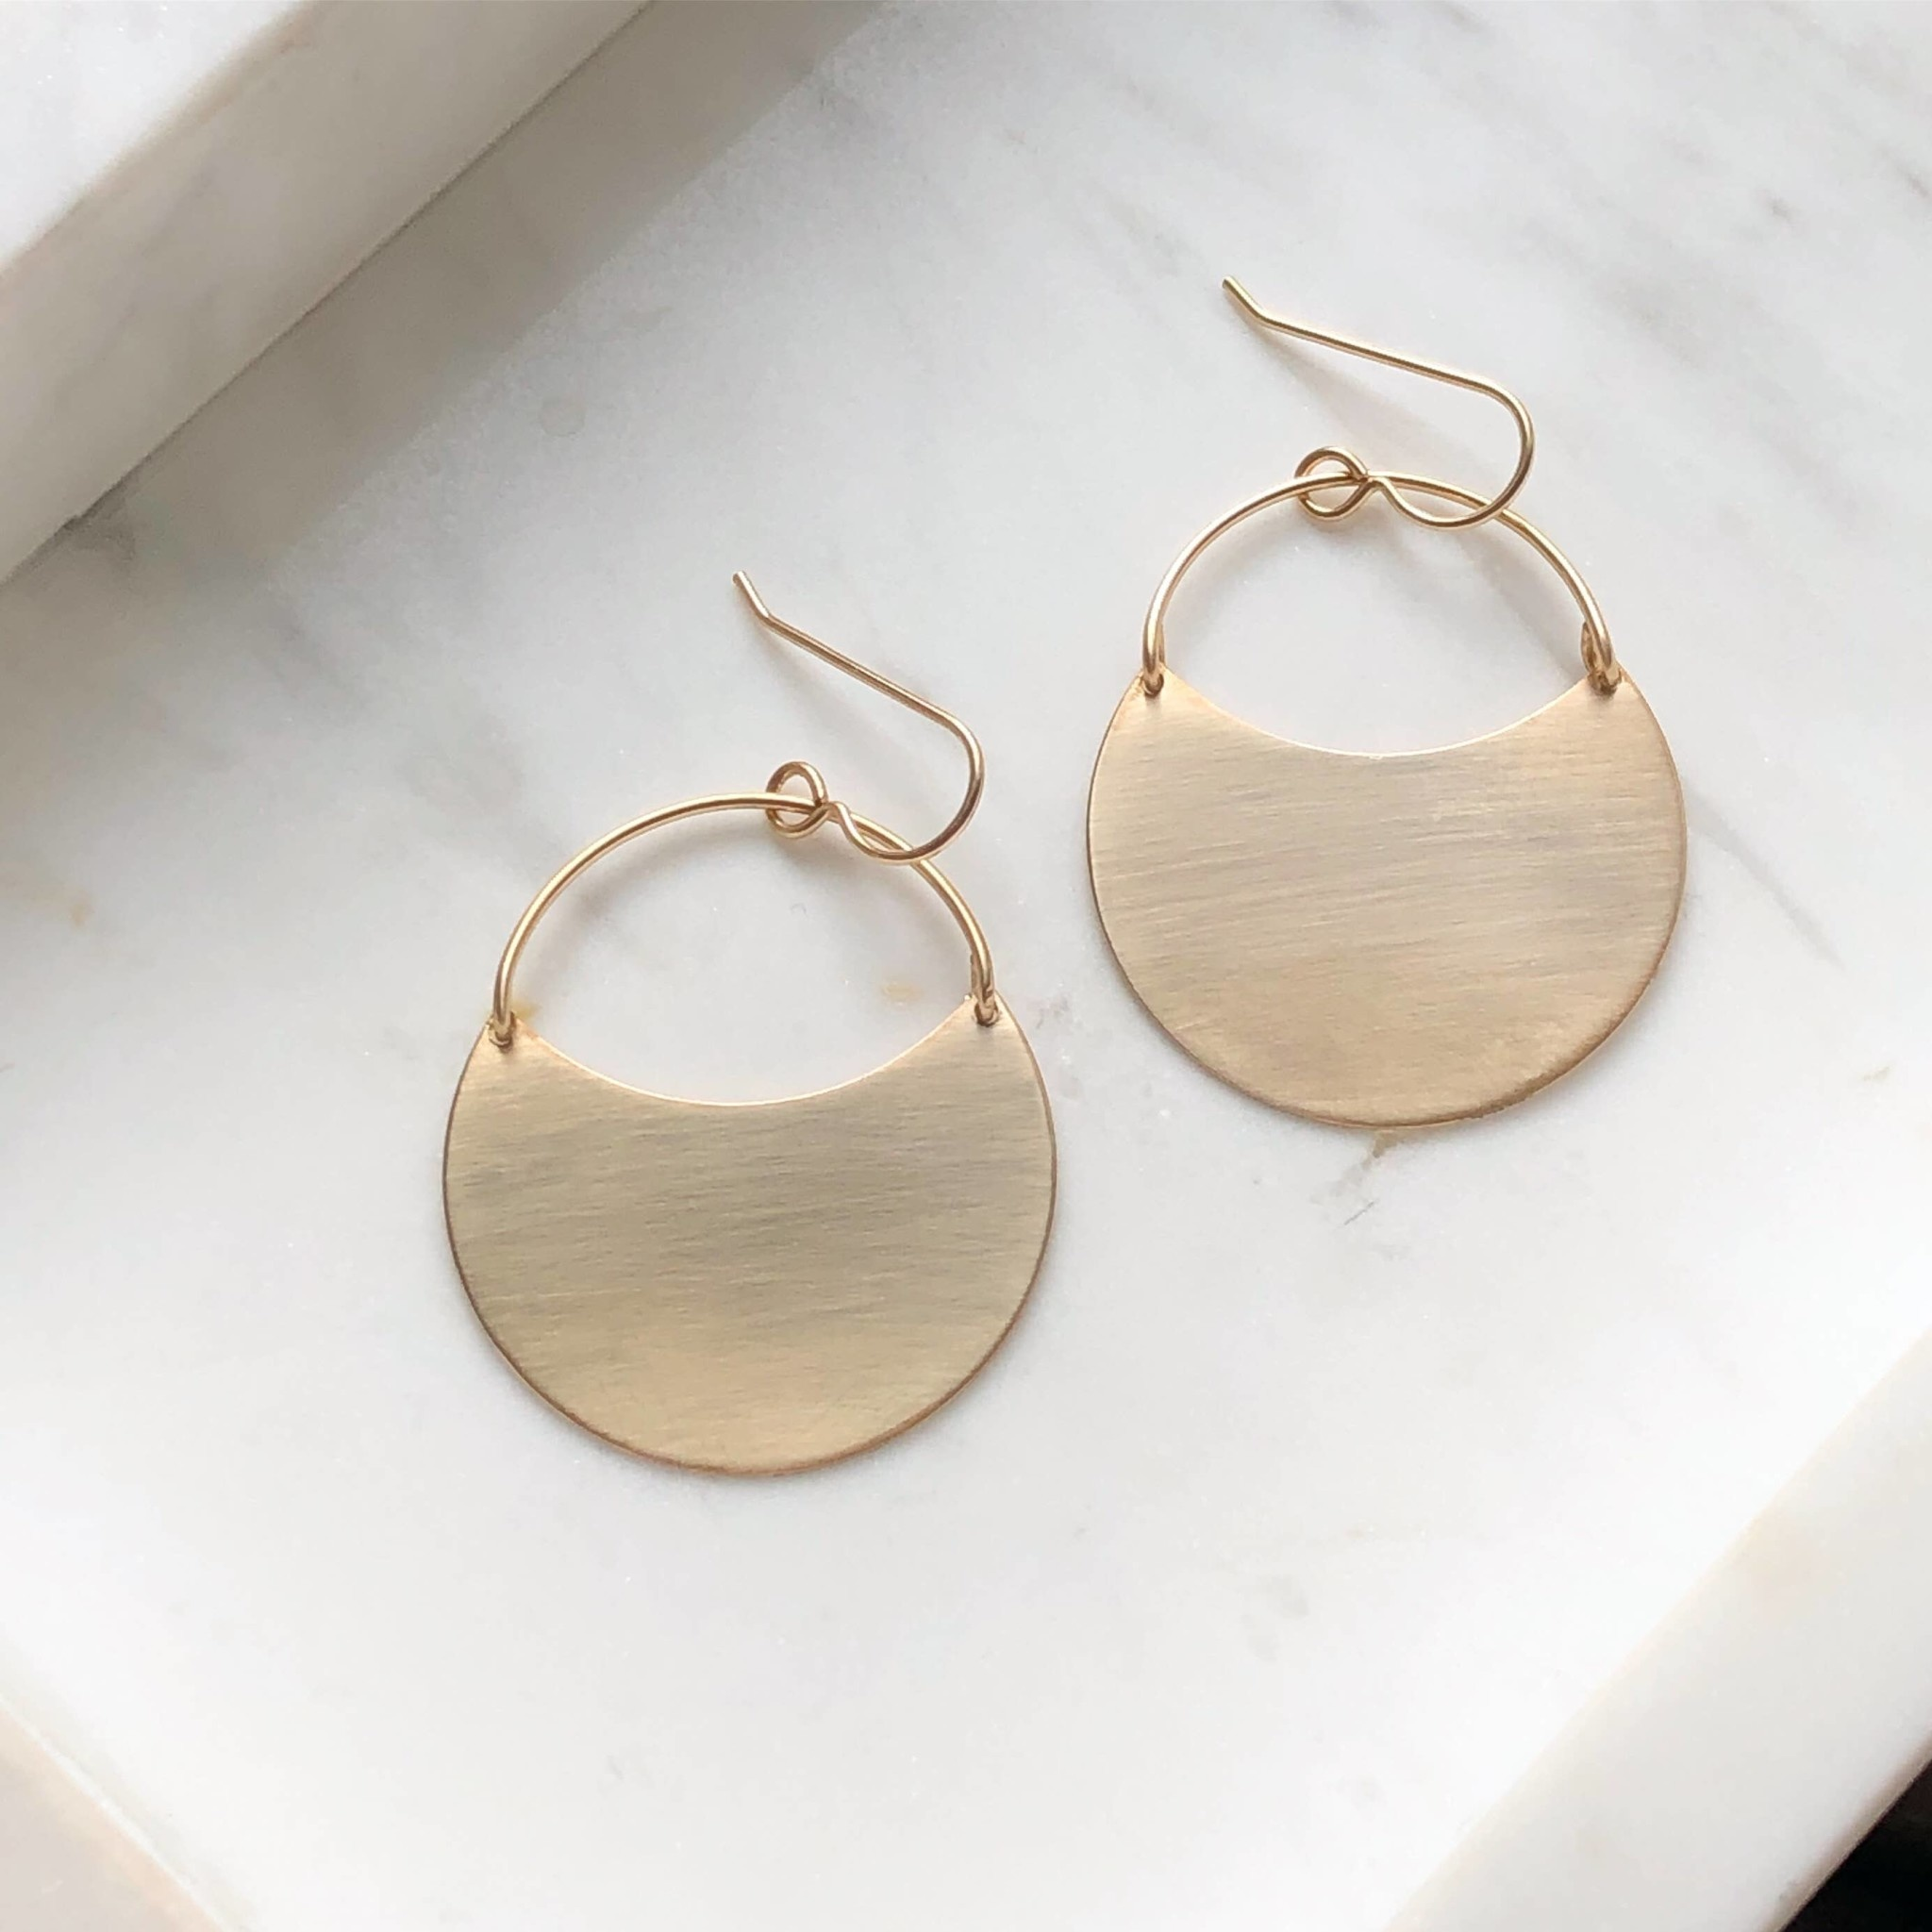 Token Jewelry Theia Earrings 14k Gold Fill Large